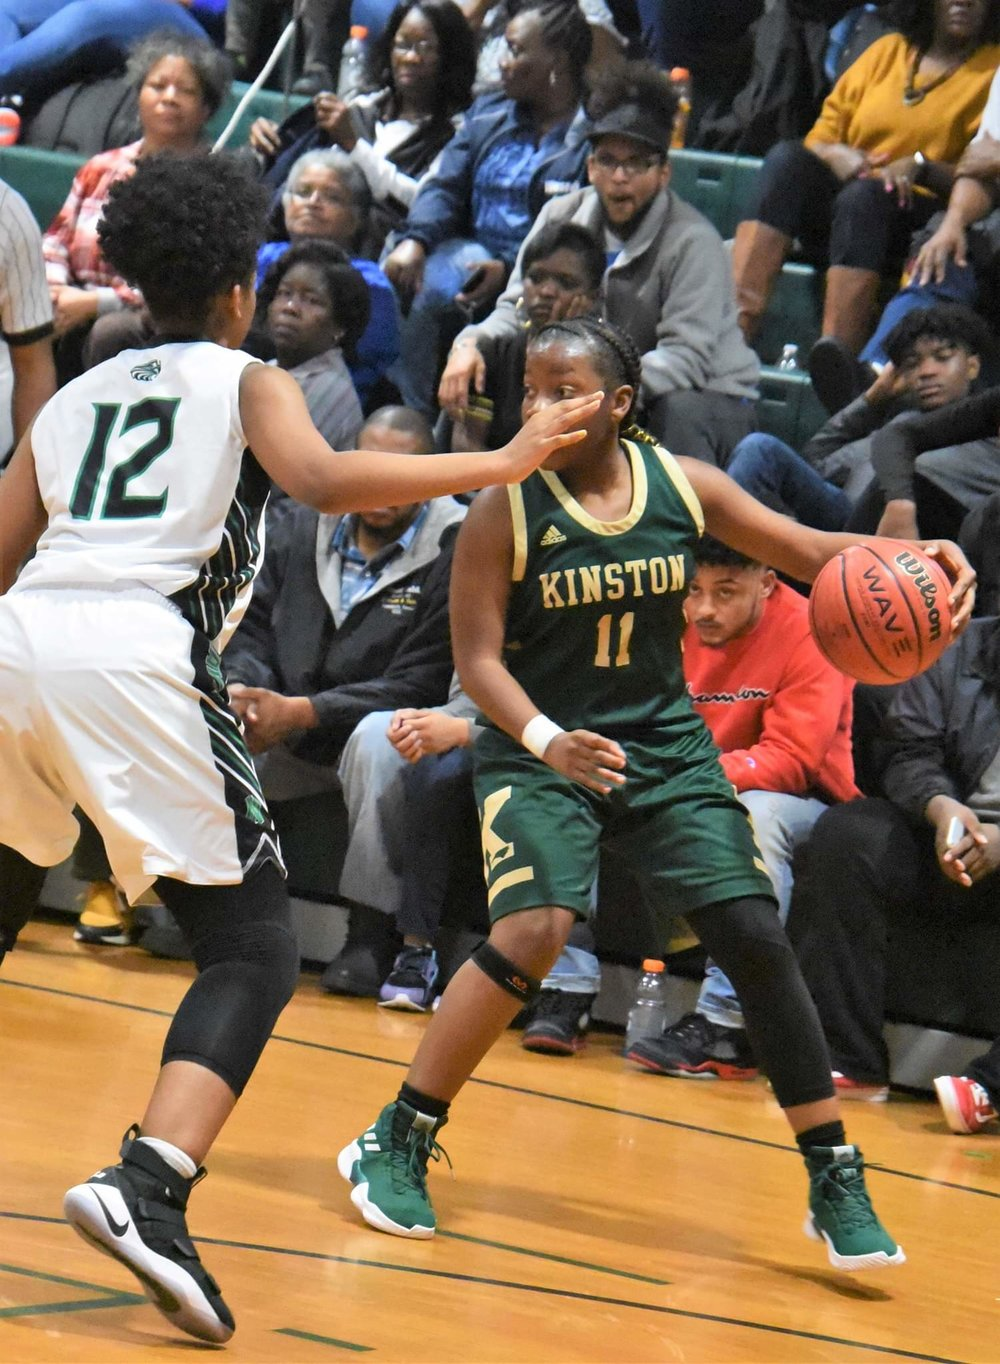 """Kinston's Michyla Dove scored 11 of her 13 points in the second half as the Vikings defeated North Lenoir Tuesday. Photo by William """"Bud"""" Hardy / Neuse News"""